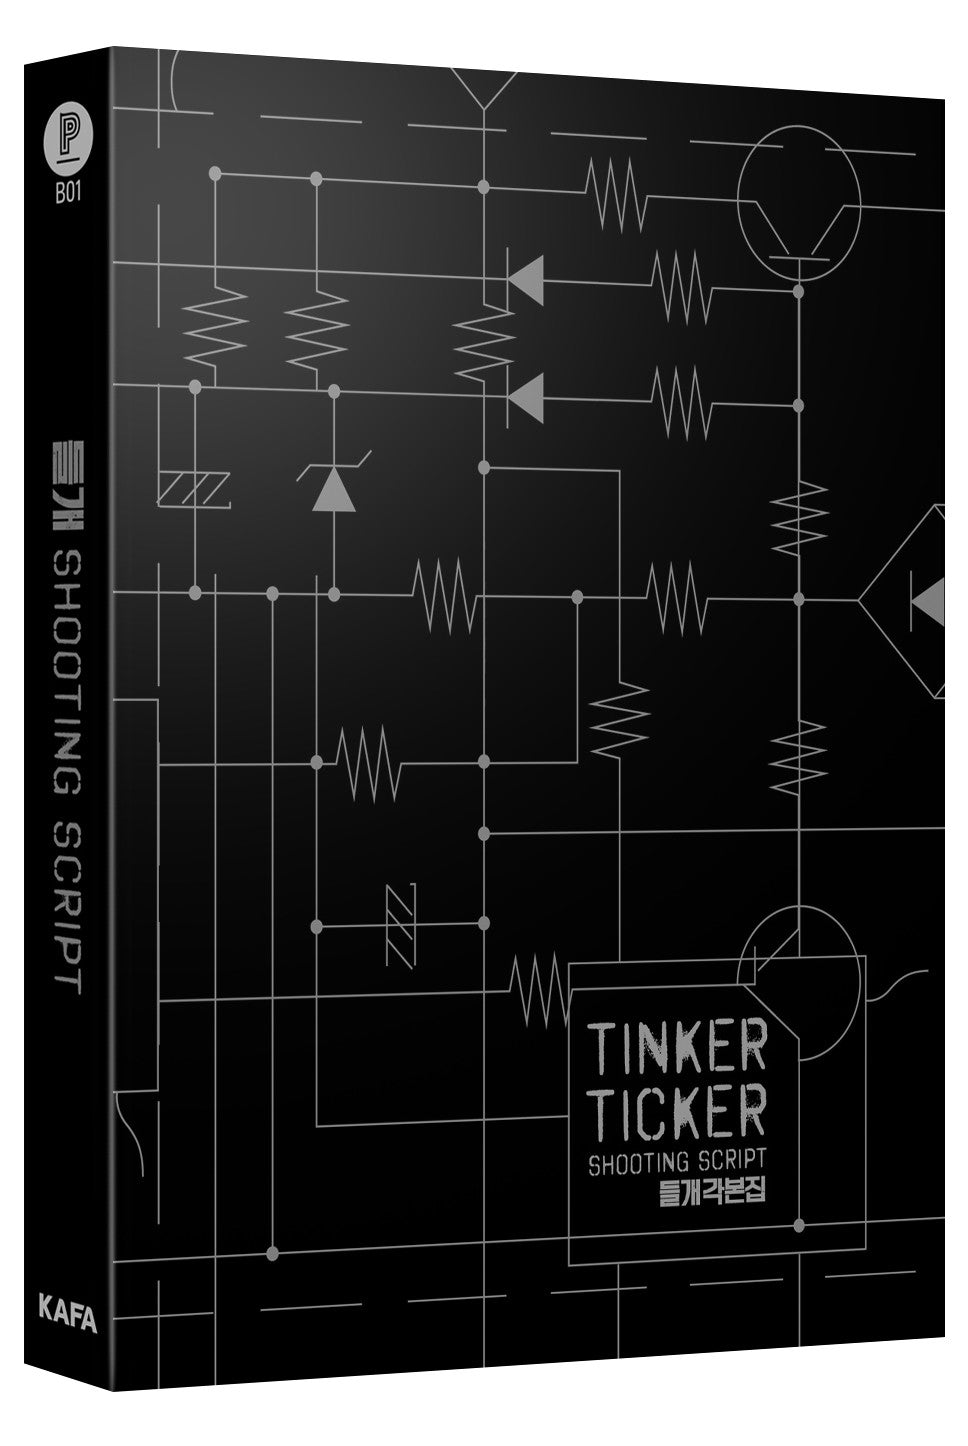 Tinker Ticker : Shooting Script